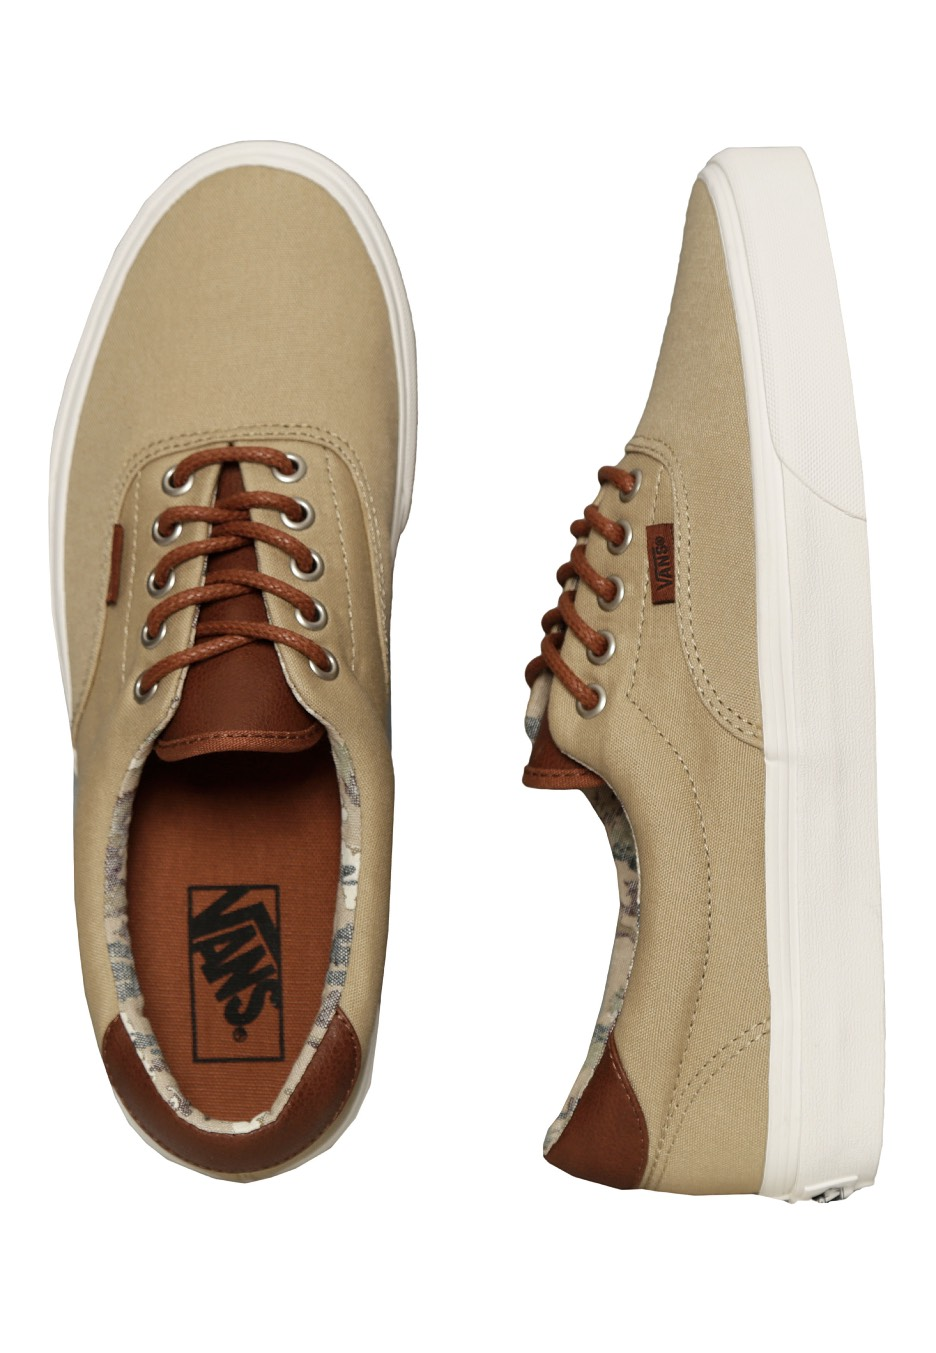 Vans - Era 59 Desert Cowboy Khaki - Shoes - Impericon.com UK 036e4128ca7c